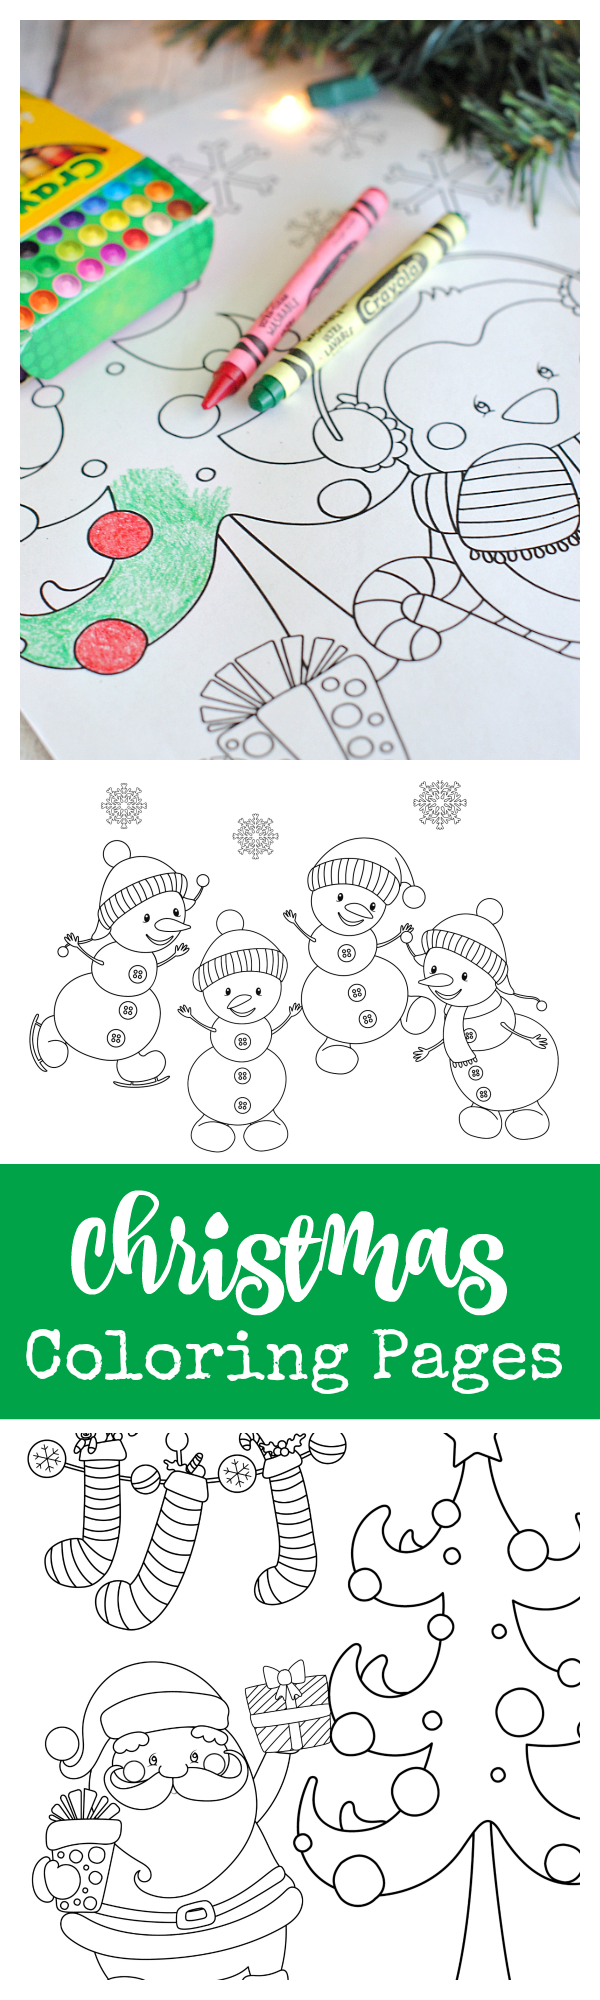 Free Printable Christmas Coloring Pages | Free printable, Ravens and ...